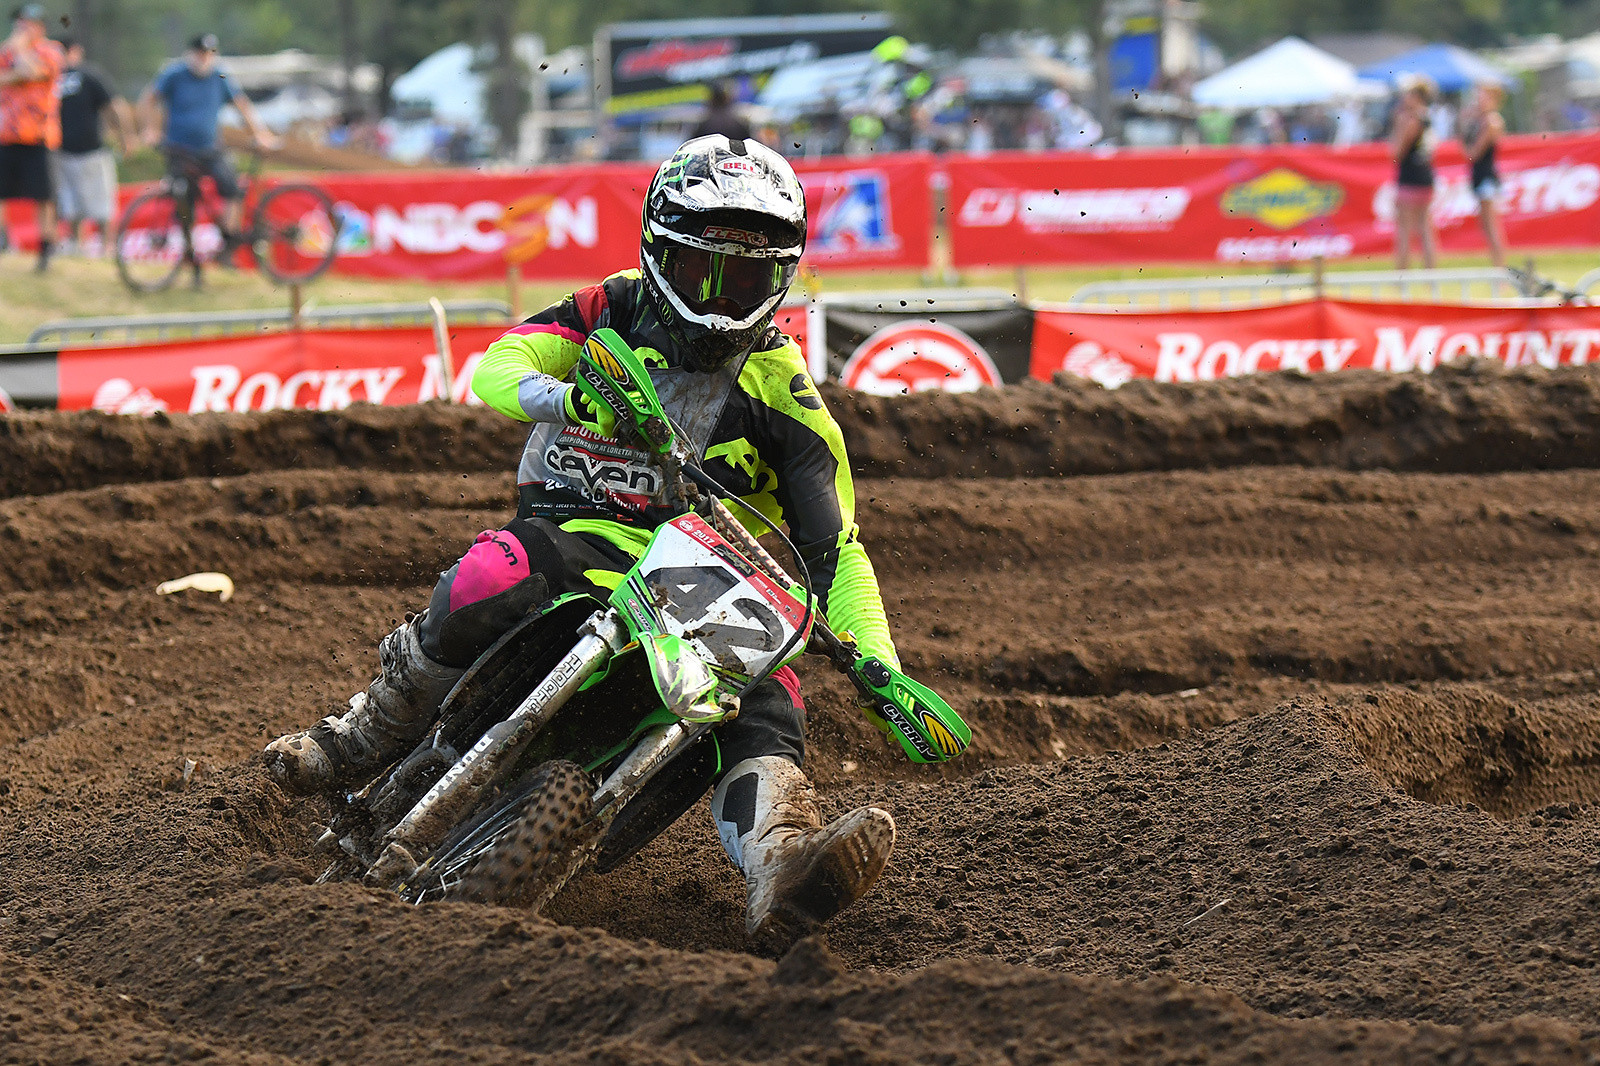 Tennessee's own Nathan Thrasher had the last senior mini moto in the bag until he swapped out in the sand whoops and then caught a haybale and went down. The good news is when he gets on a big bike he's going to be even more competitive.